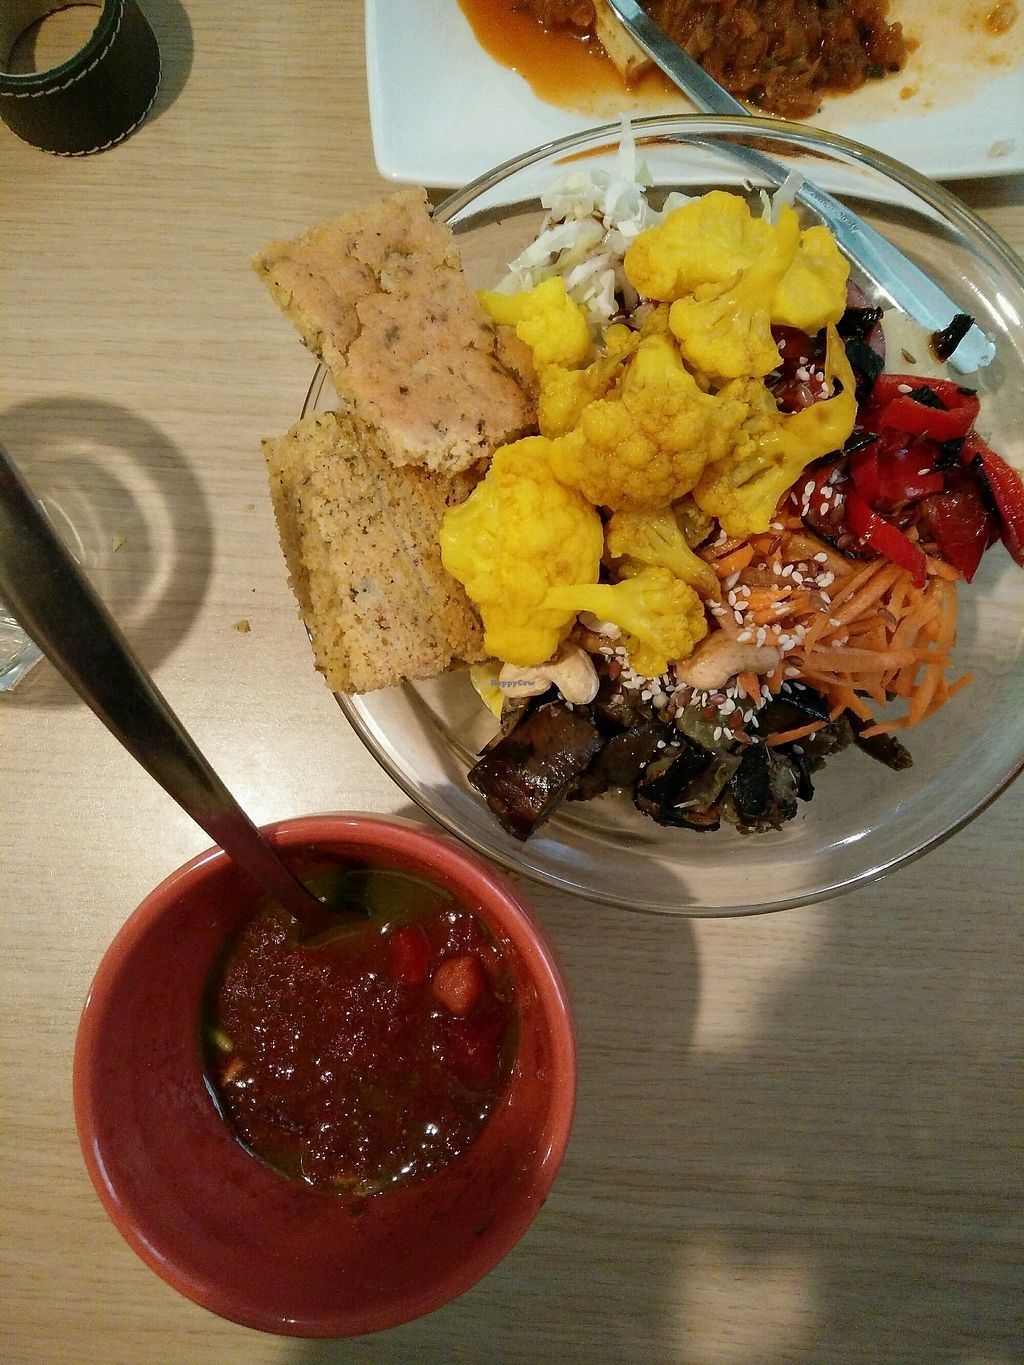 """Photo of Nishta  by <a href=""""/members/profile/SavPomegranate"""">SavPomegranate</a> <br/>Spicy soup and salad, so fresh!  <br/> October 1, 2017  - <a href='/contact/abuse/image/10021/310792'>Report</a>"""